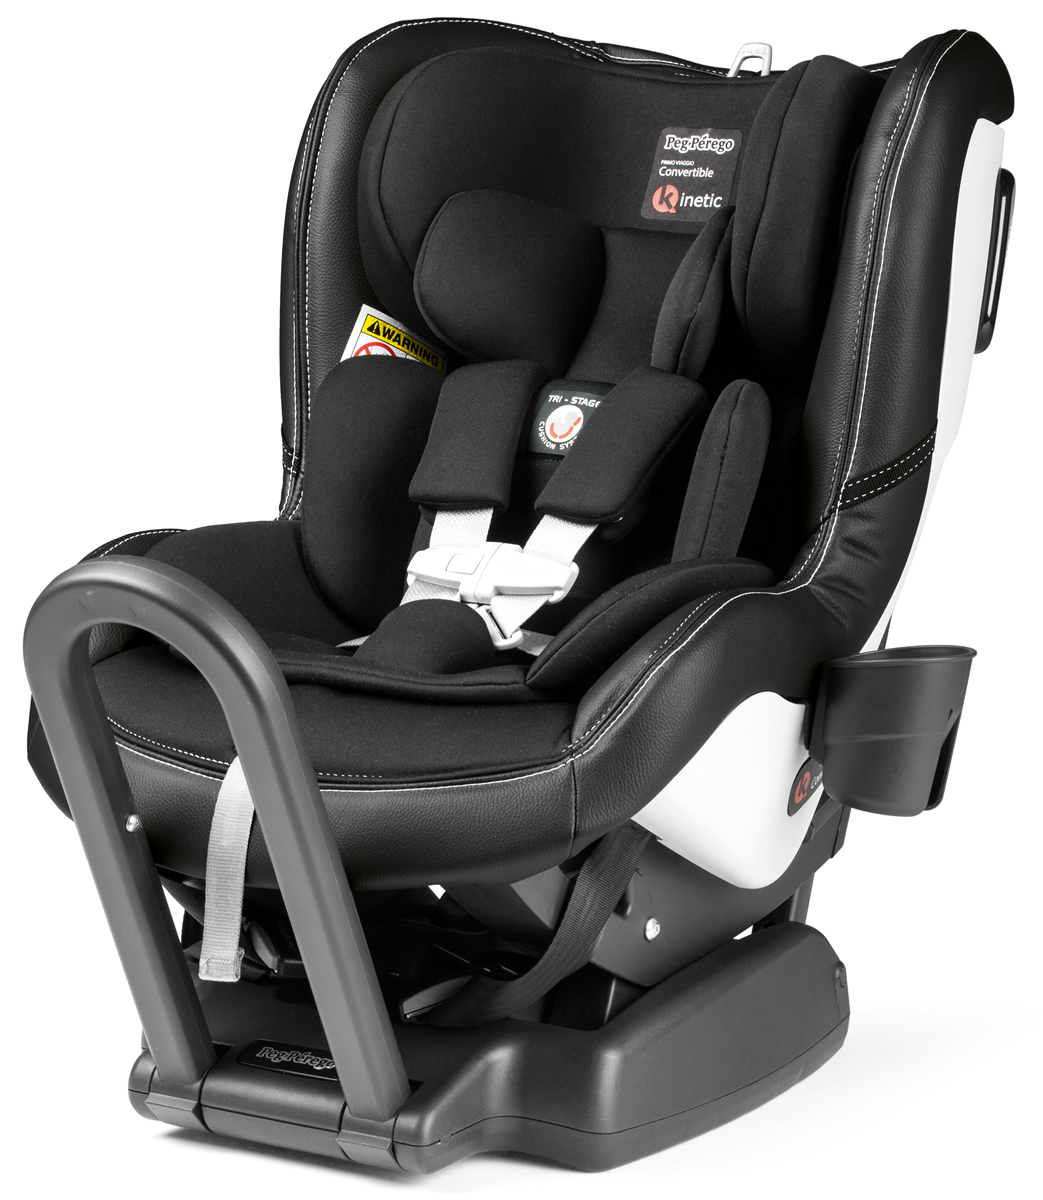 Peg-Perego Primo Viaggio Convertible Kinetic - Licorice